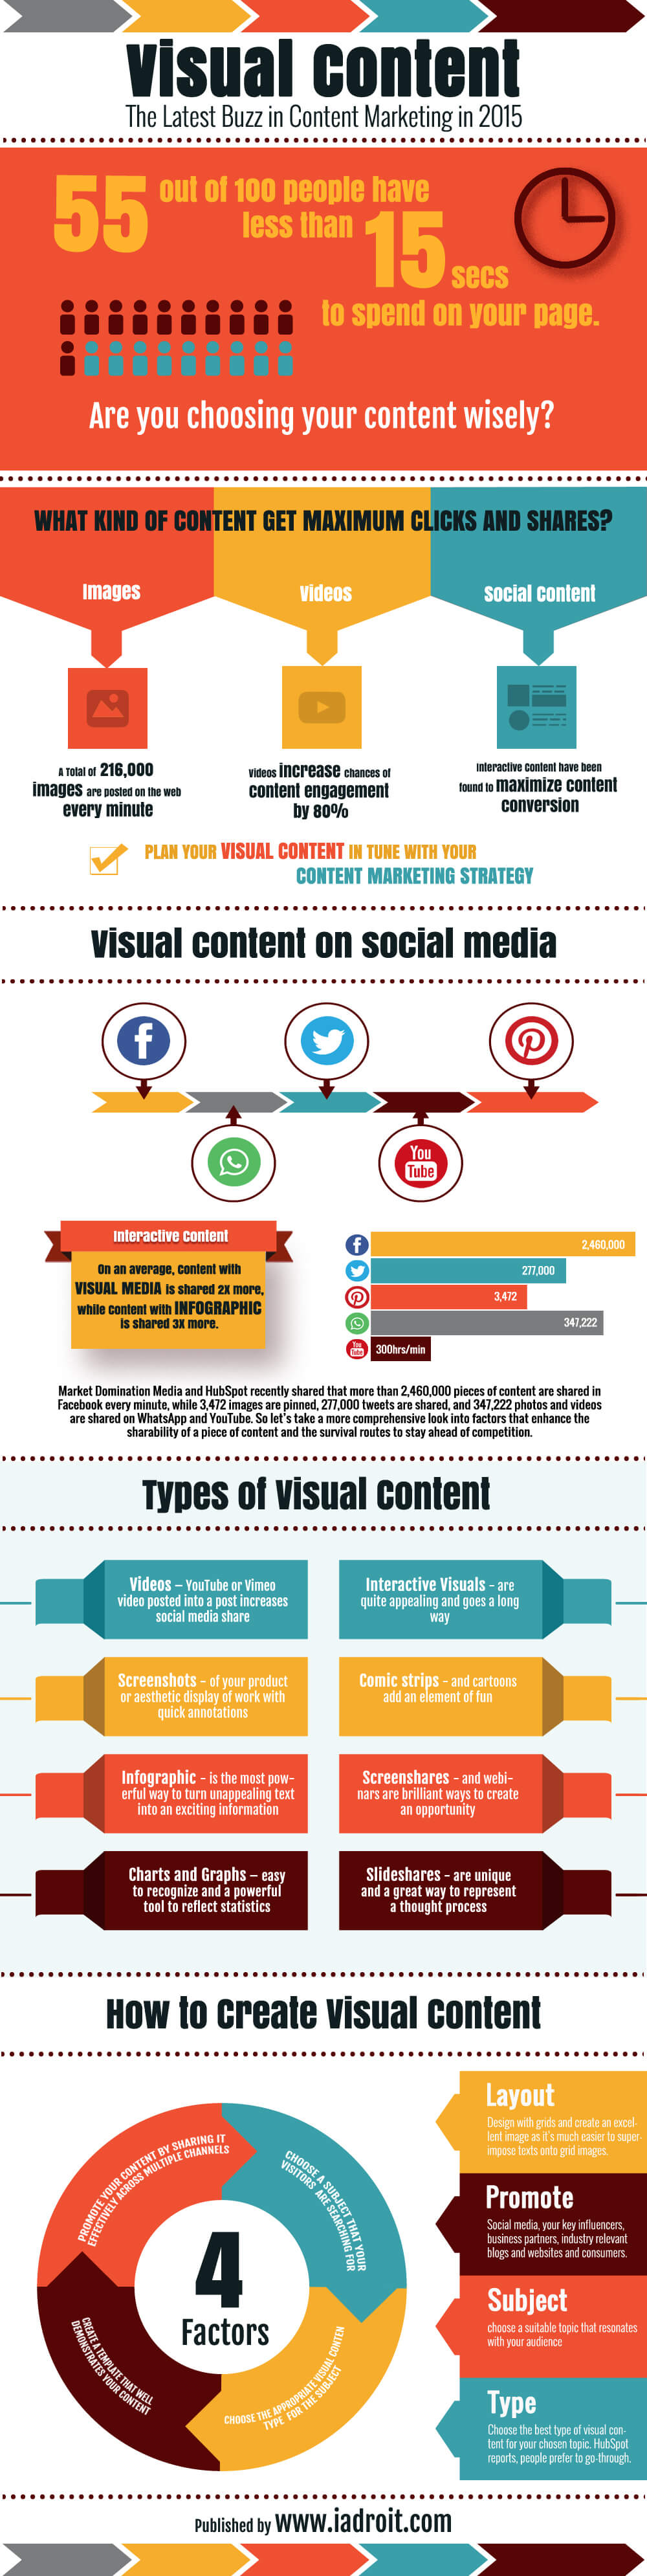 Visual Content Trend in 2015